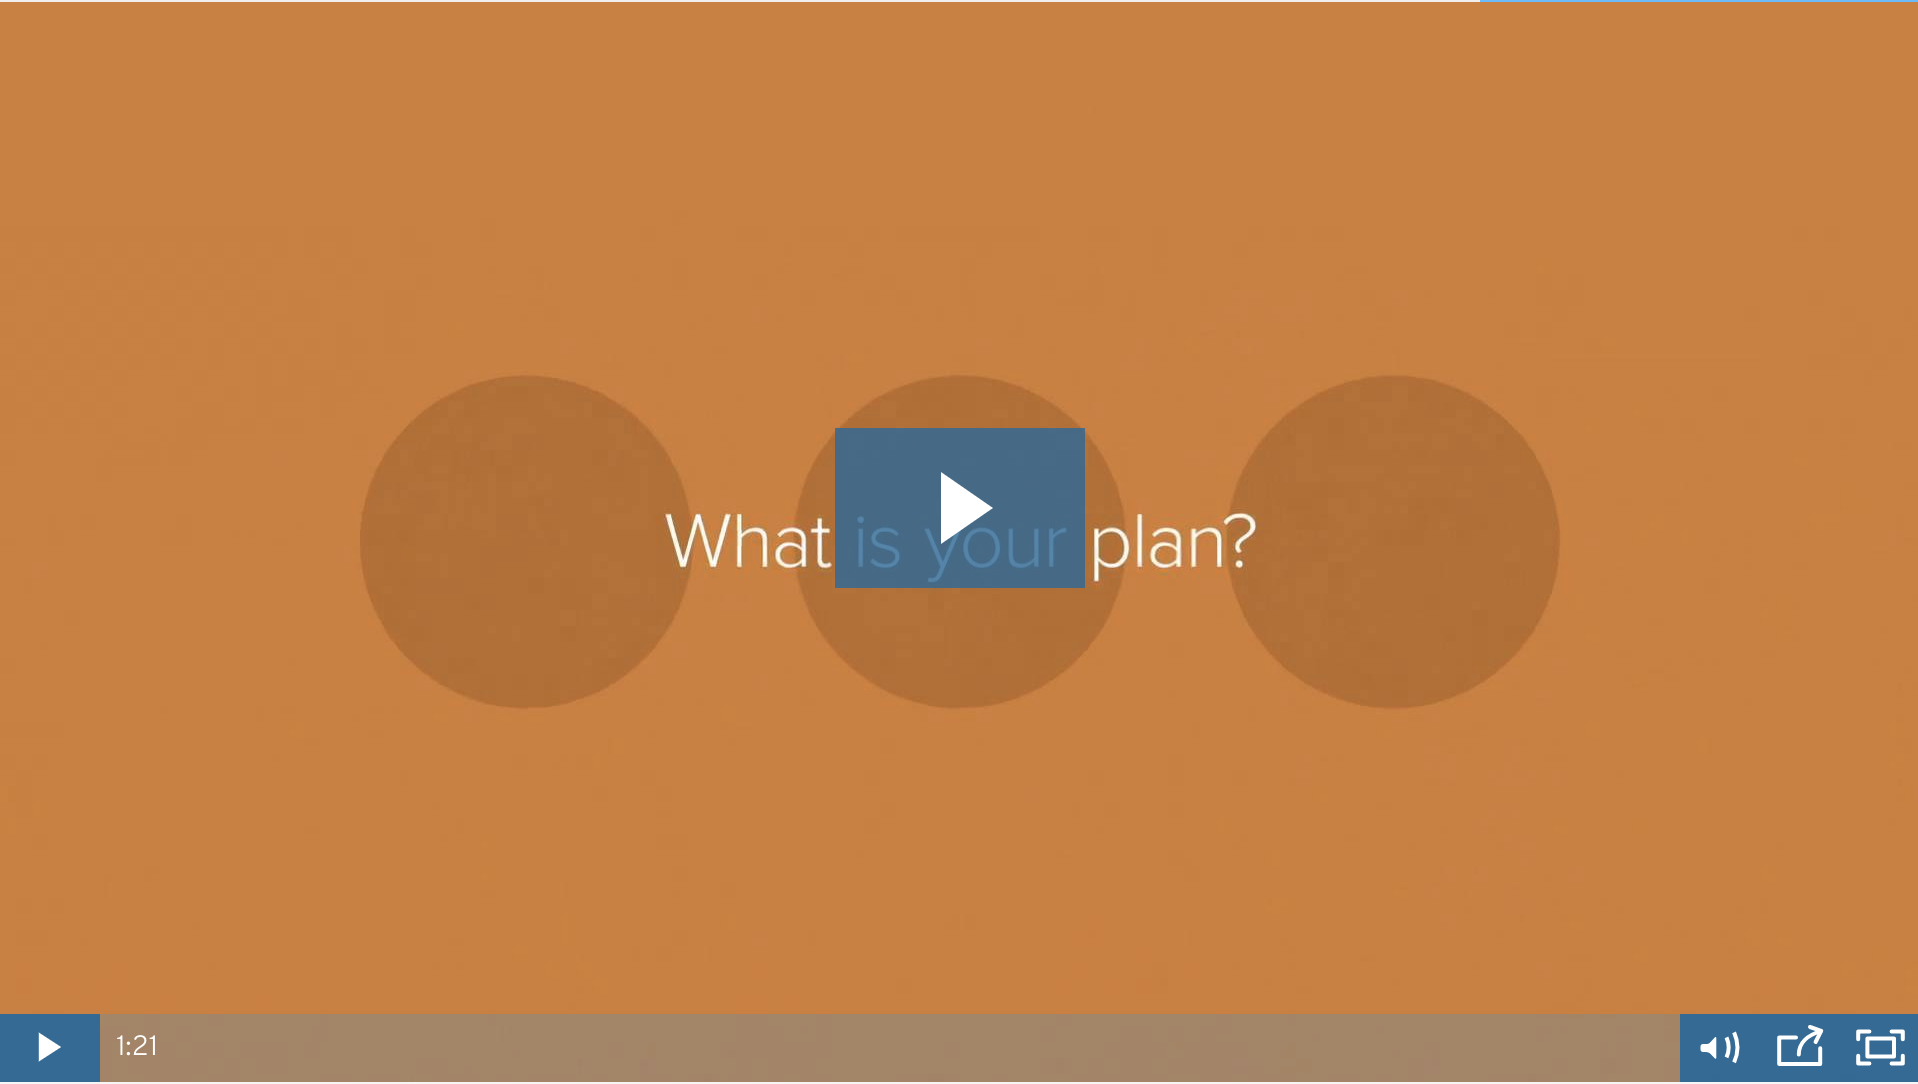 Why Choose Everplans?